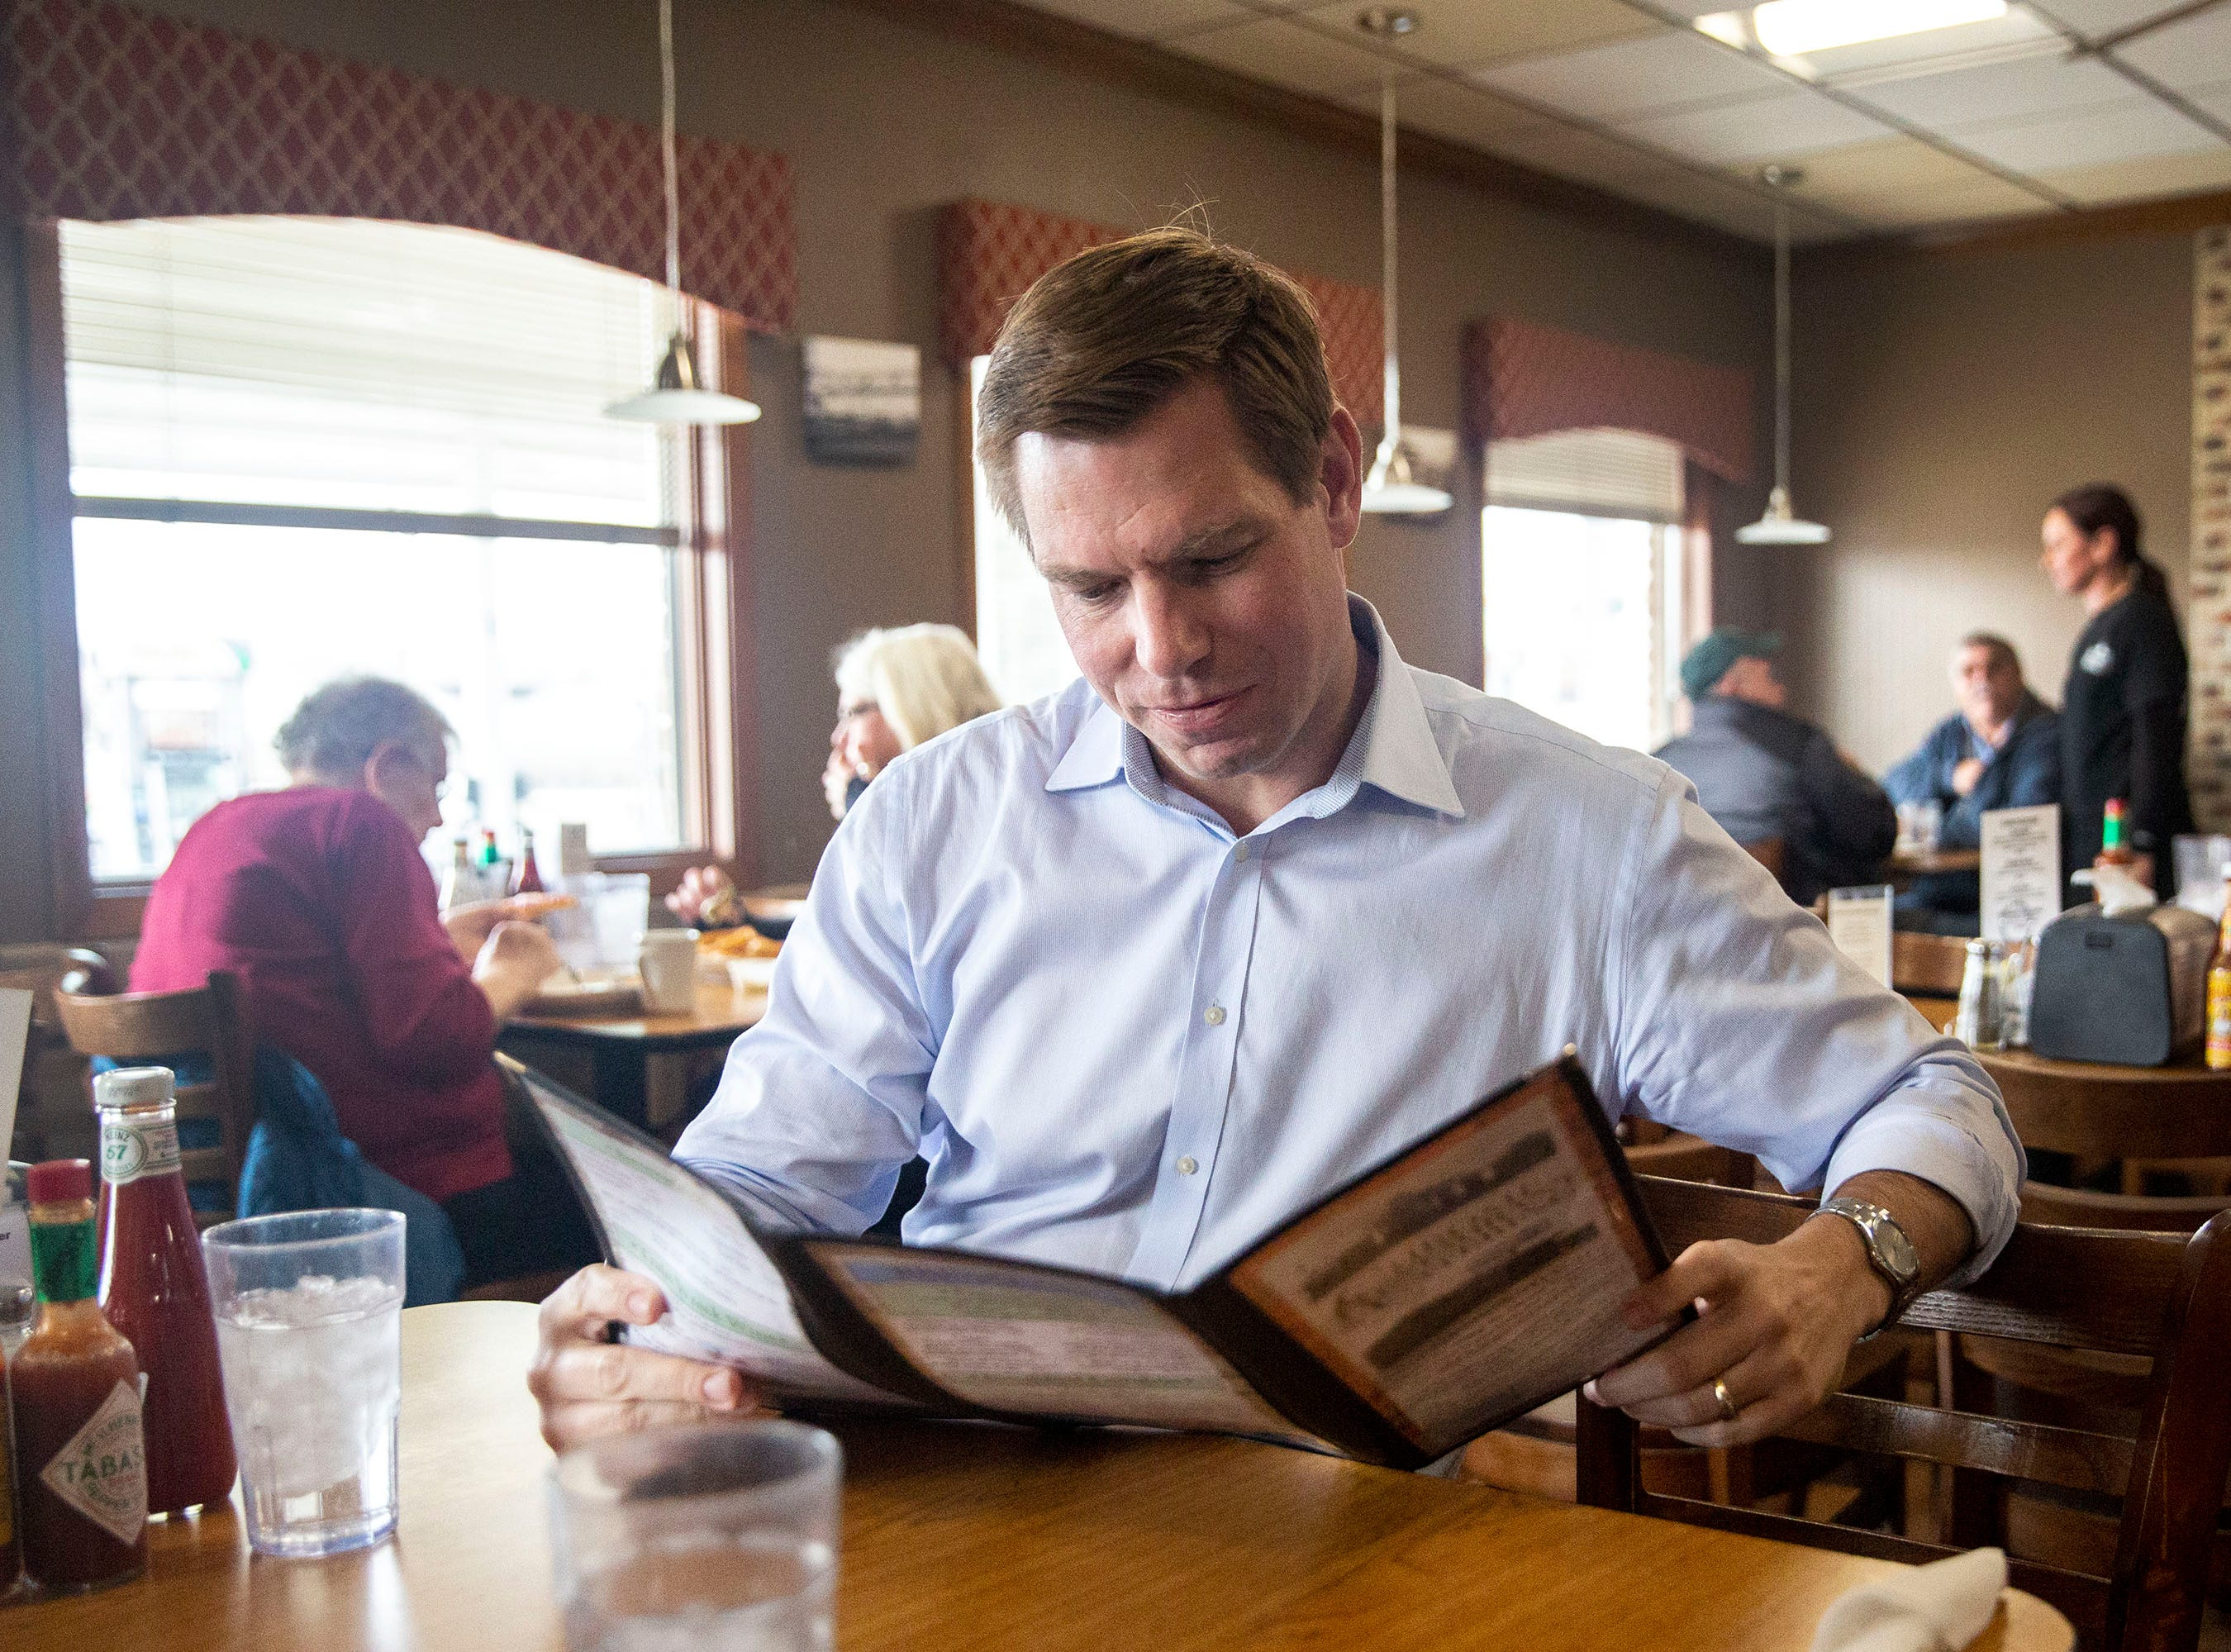 U.S. Rep. Eric Swalwell, D-CA, looks over the menu before ordering a turkey sandwich at Chrome Restaurant and Catering on Monday, April 1, 2019, in Algona. Swalwell was born in Iowa and has made several trips to the state while eyeing a run for president.